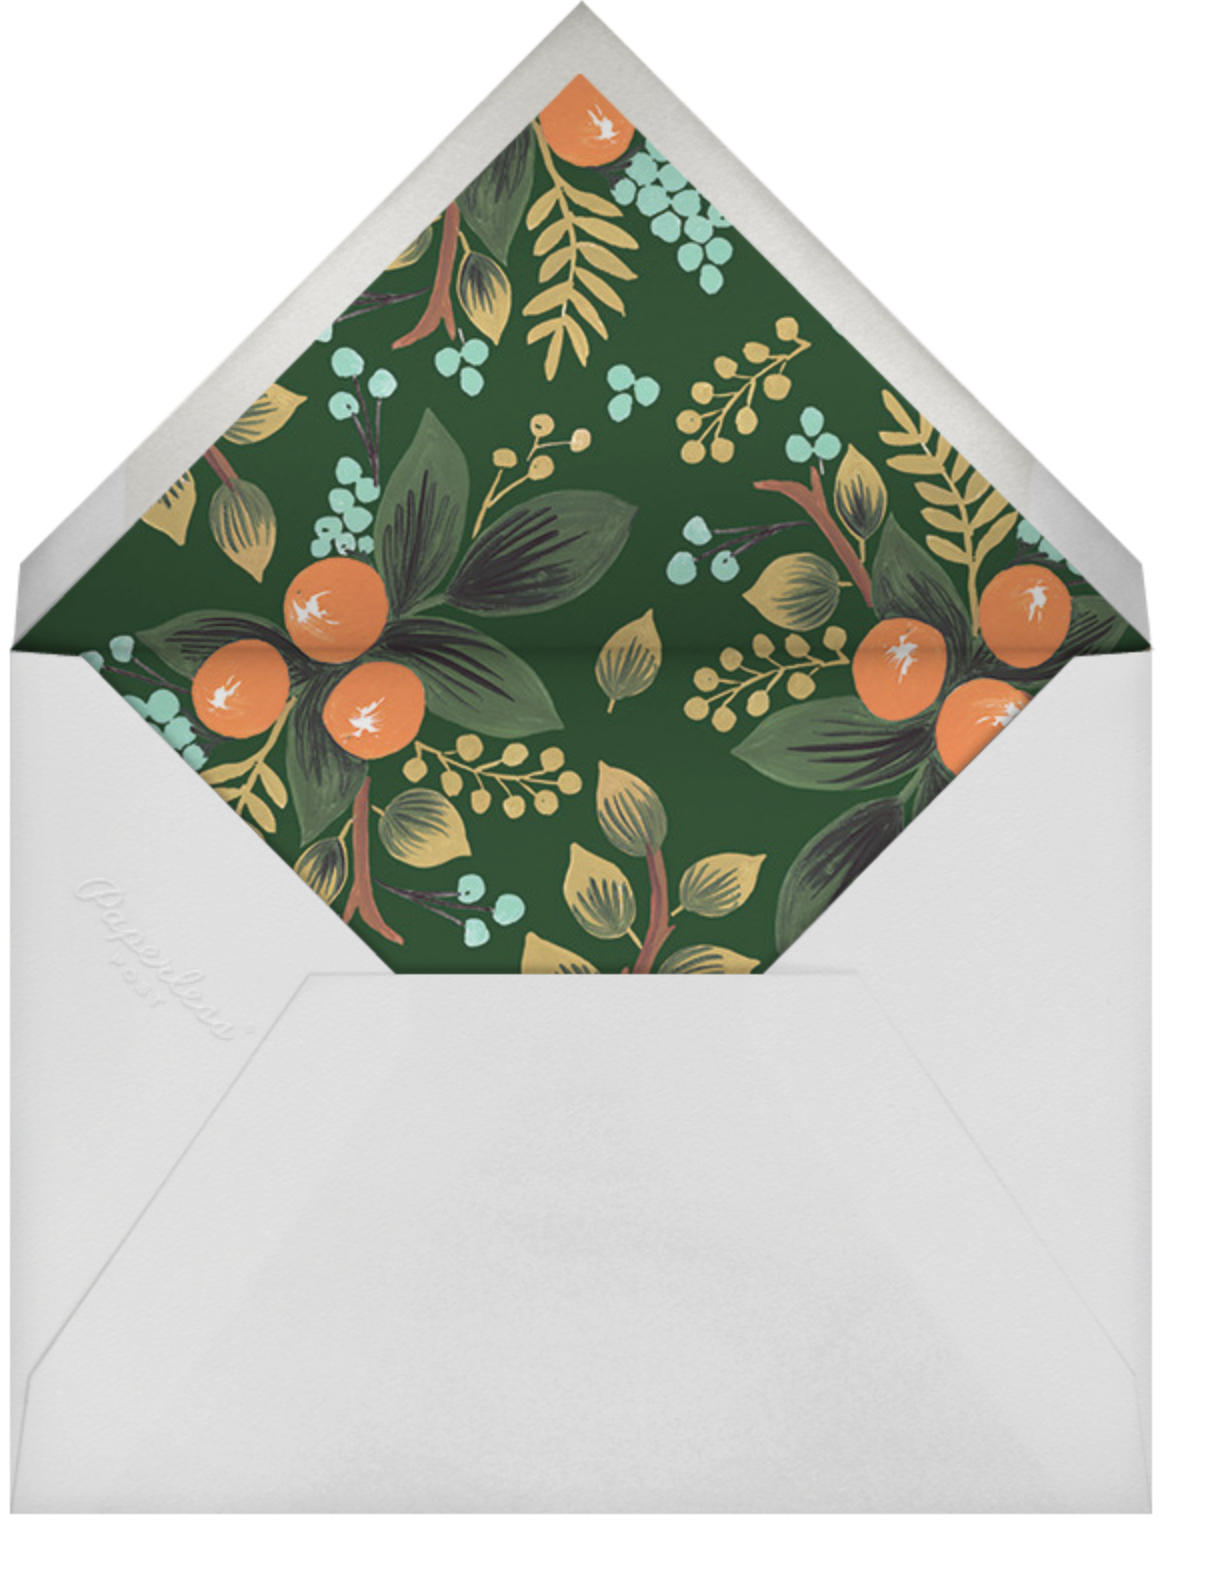 Orange Cluster (Holiday Greeting) - Rifle Paper Co. - Company holiday cards - envelope back